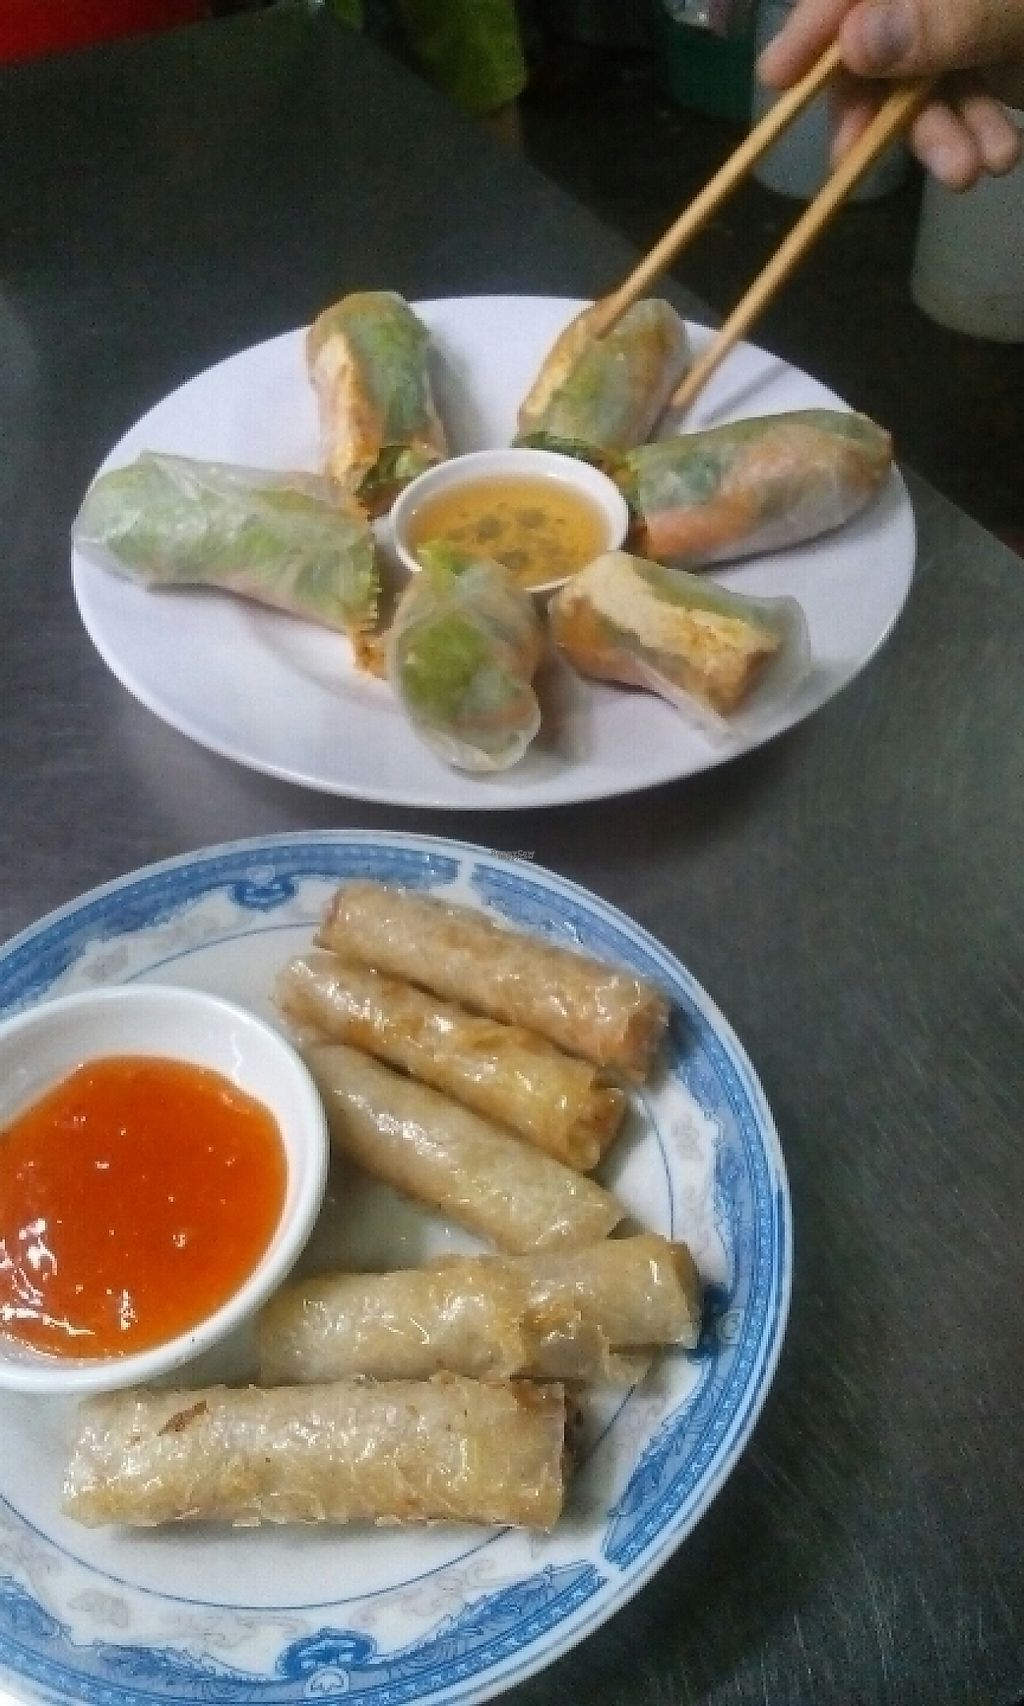 """Photo of Mrs. Diep  by <a href=""""/members/profile/Ihtak"""">Ihtak</a> <br/>Fresh an Fried Springrolls <br/> March 12, 2017  - <a href='/contact/abuse/image/88514/235673'>Report</a>"""